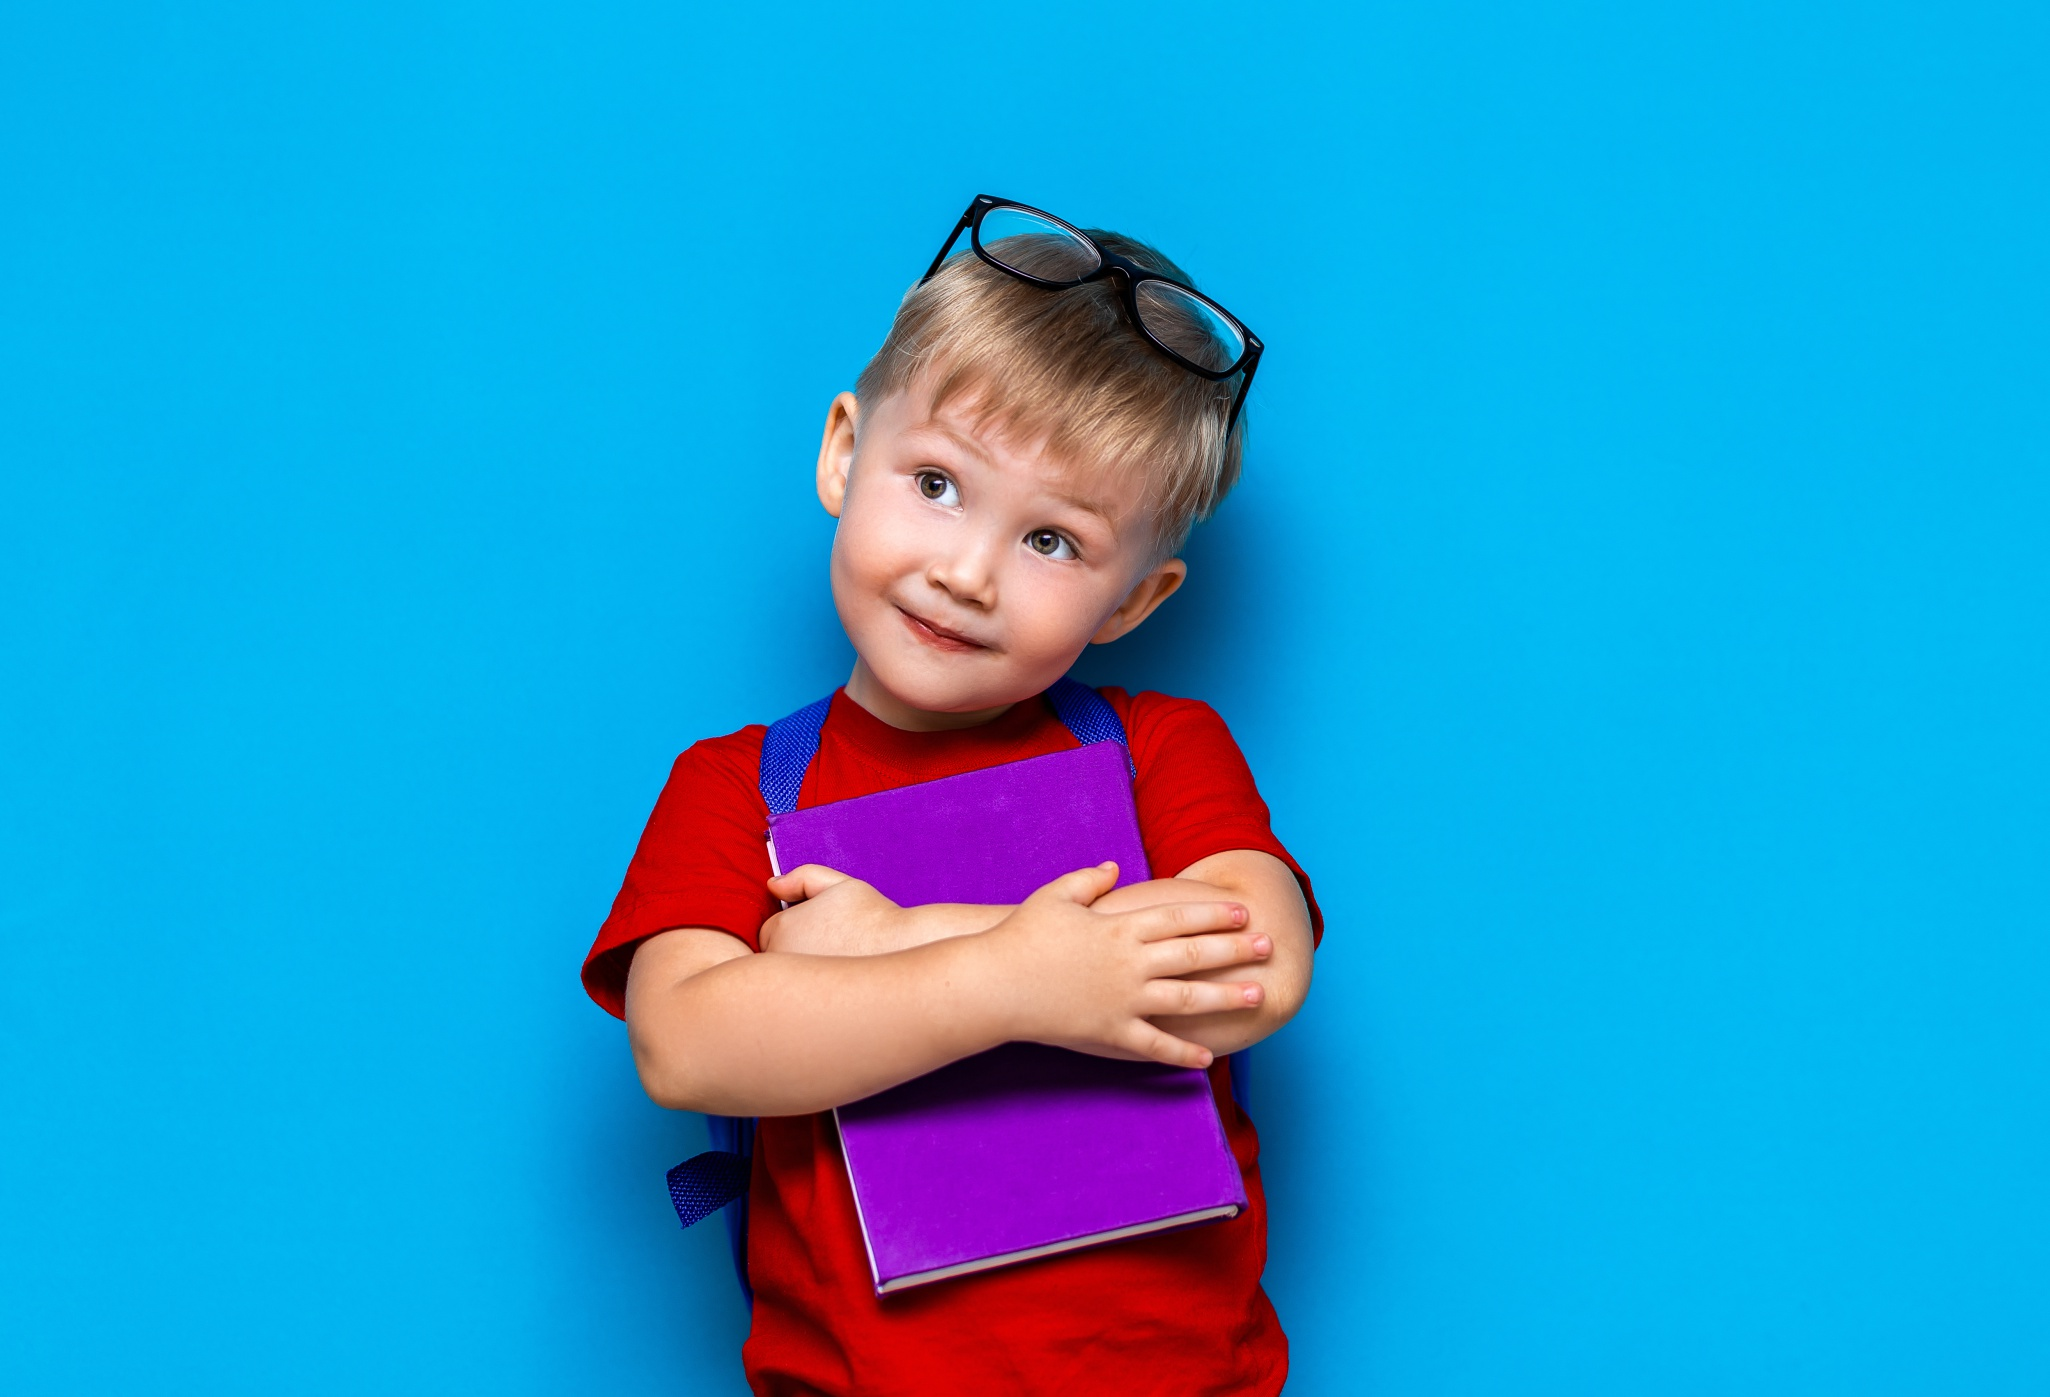 Small Happy Smiling Boy With Glasses On His Head, Book In Hands, Schoolbag On His Shoulders. Back To School. Ready To School